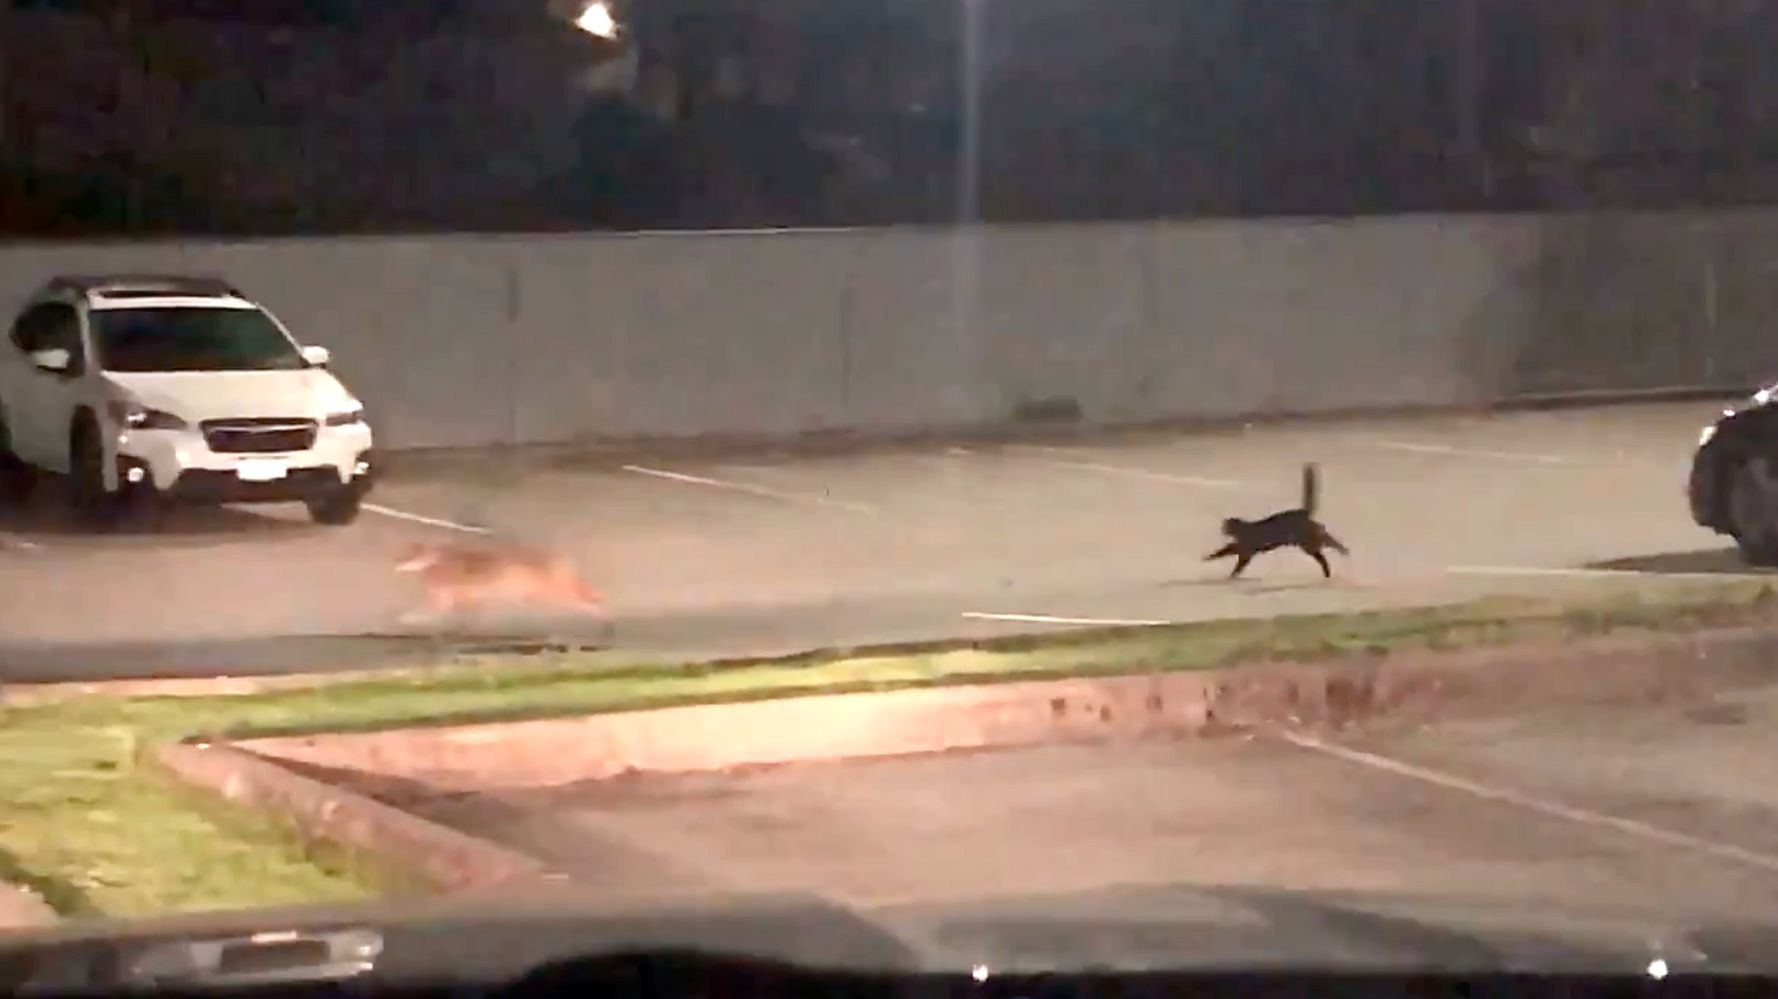 Lionhearted Cat Flips Out At Coyote In Video Of Parking Lot Run-In